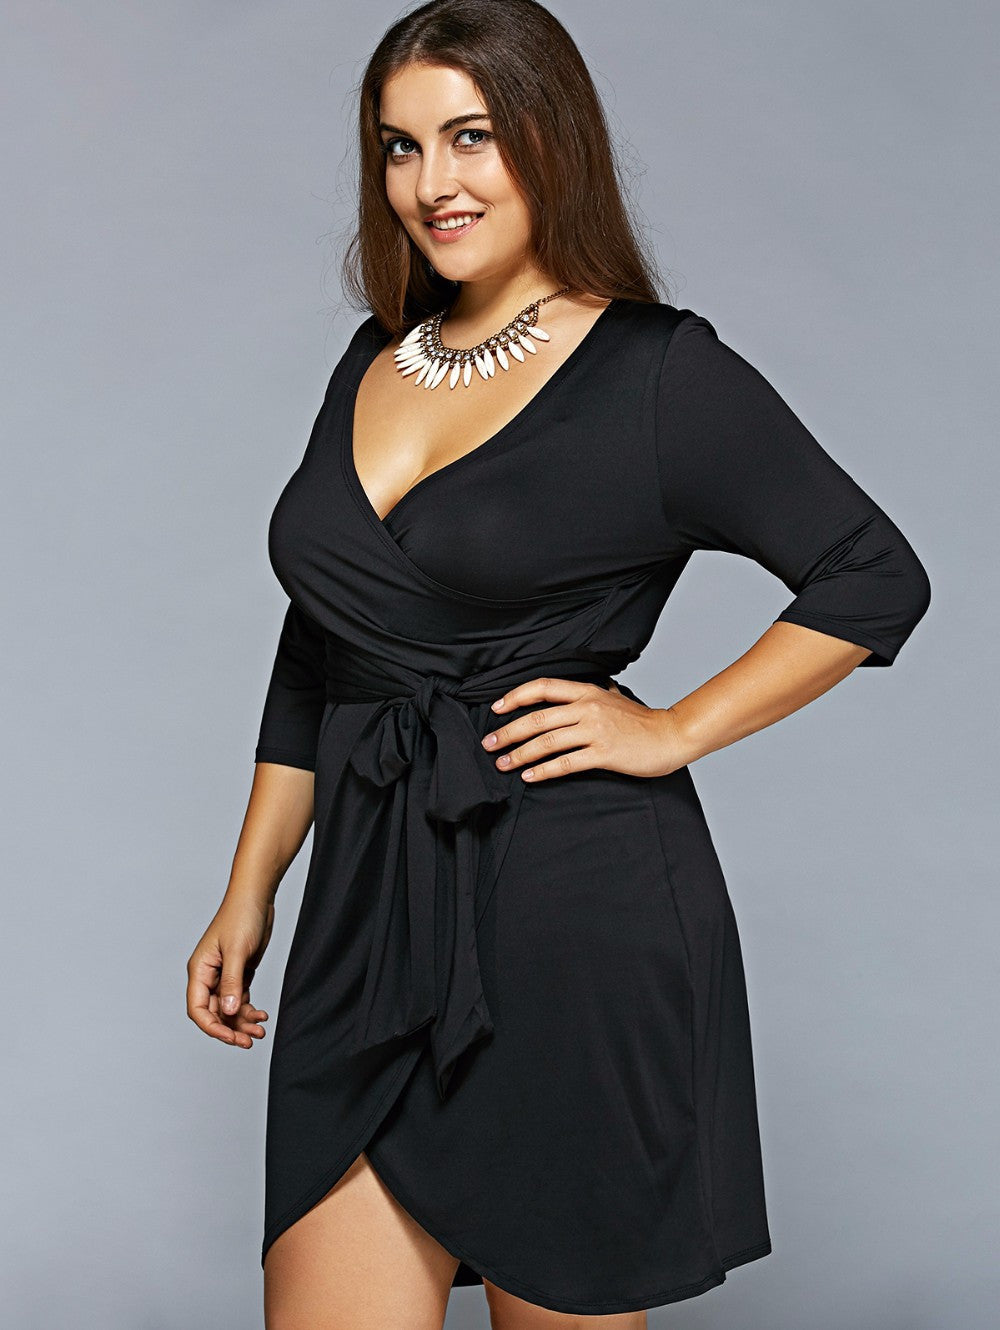 Plus Size Women Clothing 2017 Summer Dress - terryjerrynguys